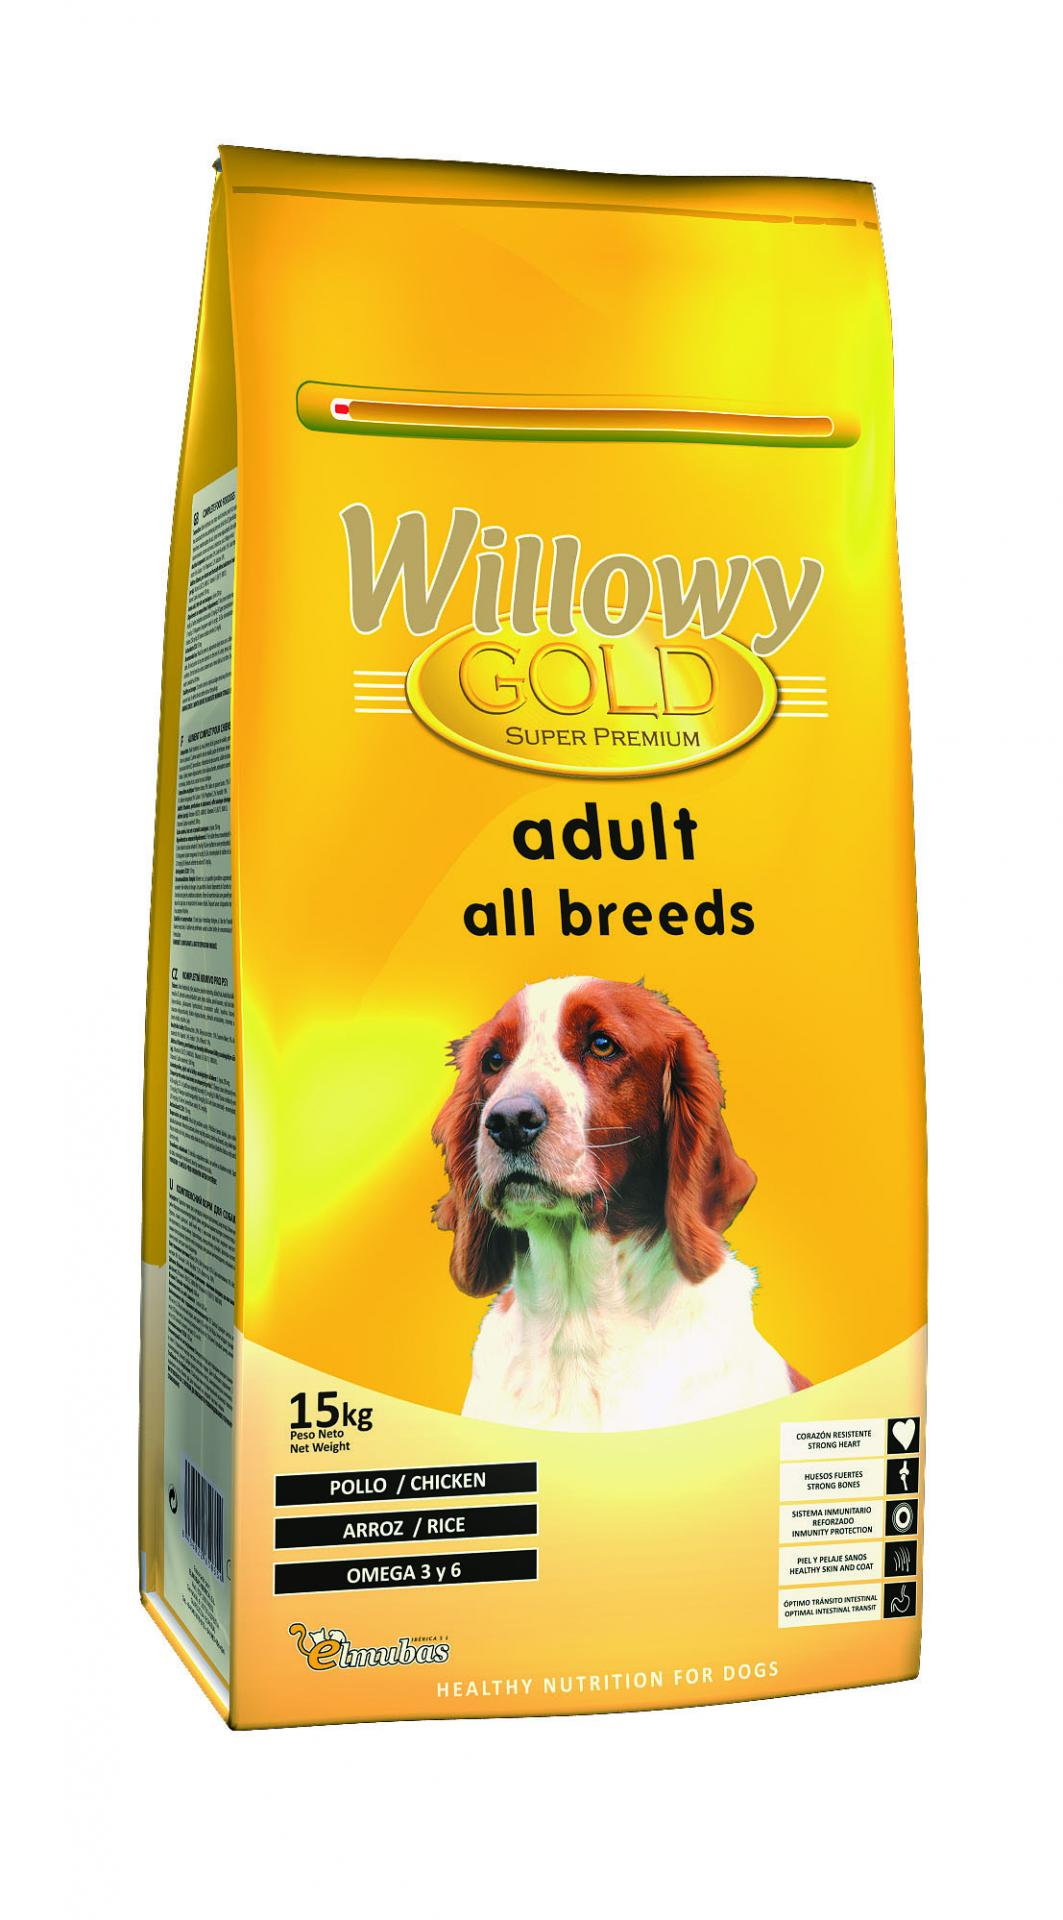 Willowy Gold ADULT